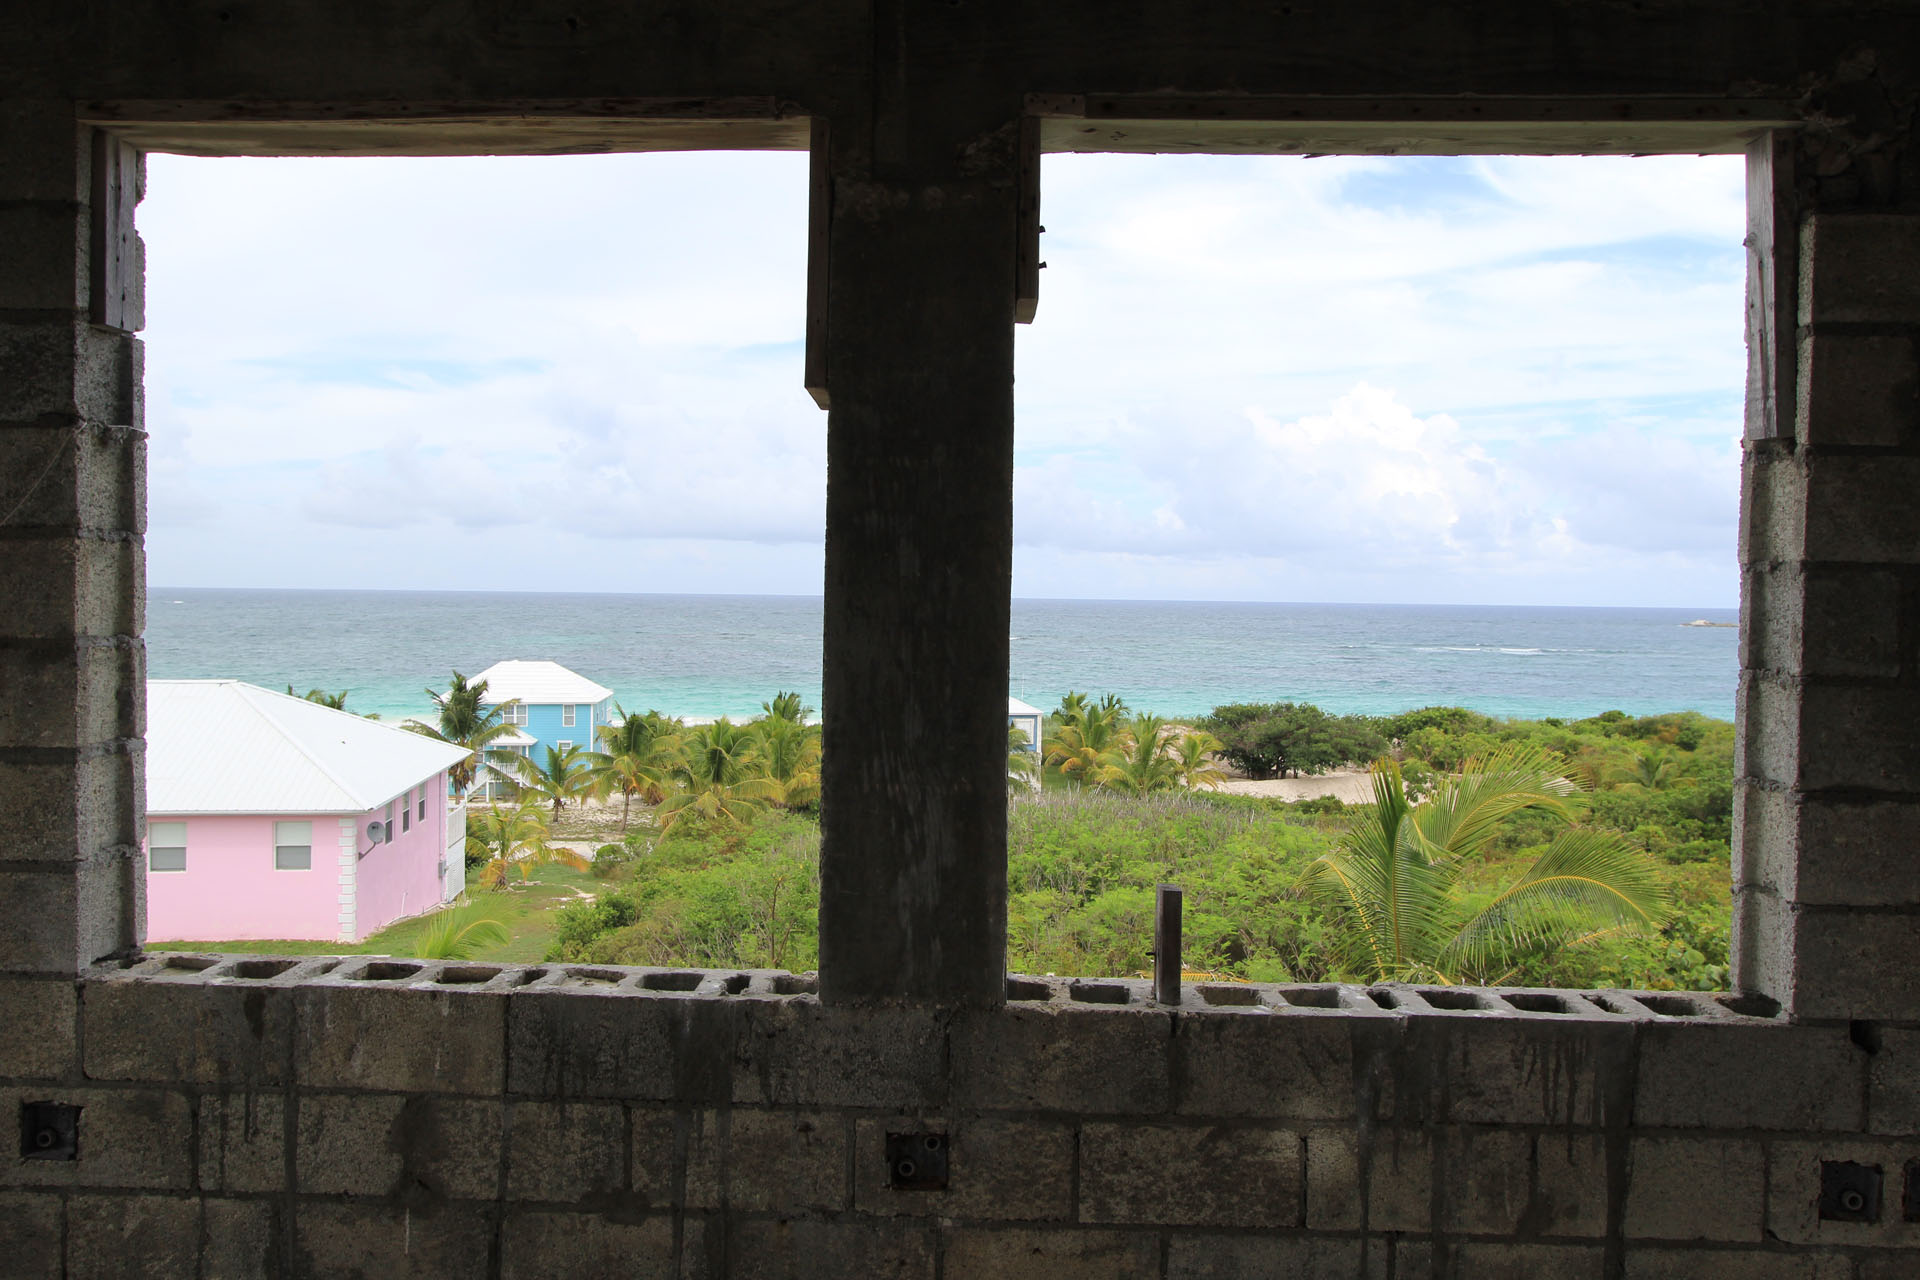 Single Family Home for Sale at Long Beach Home, South Abaco, Bahamas (MLS 28026) Long Beach, Abaco, Bahamas